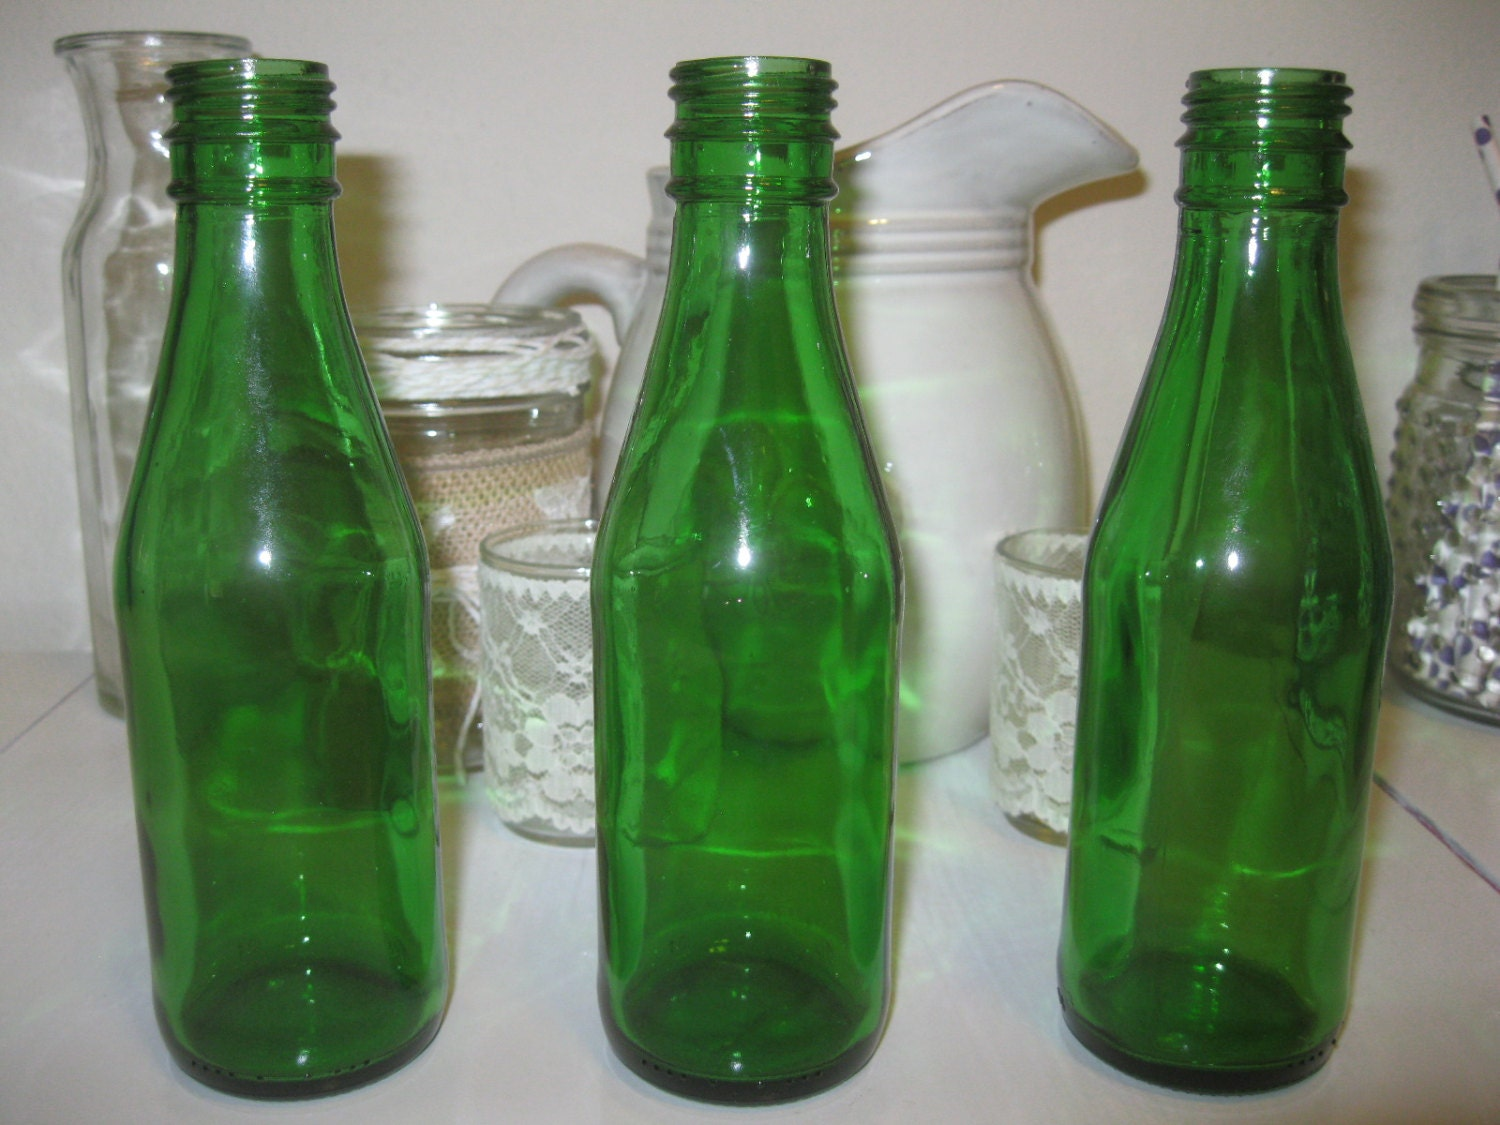 Three green glass decorative colored 6 glass by bertolibridal for Colored glass bottles with corks